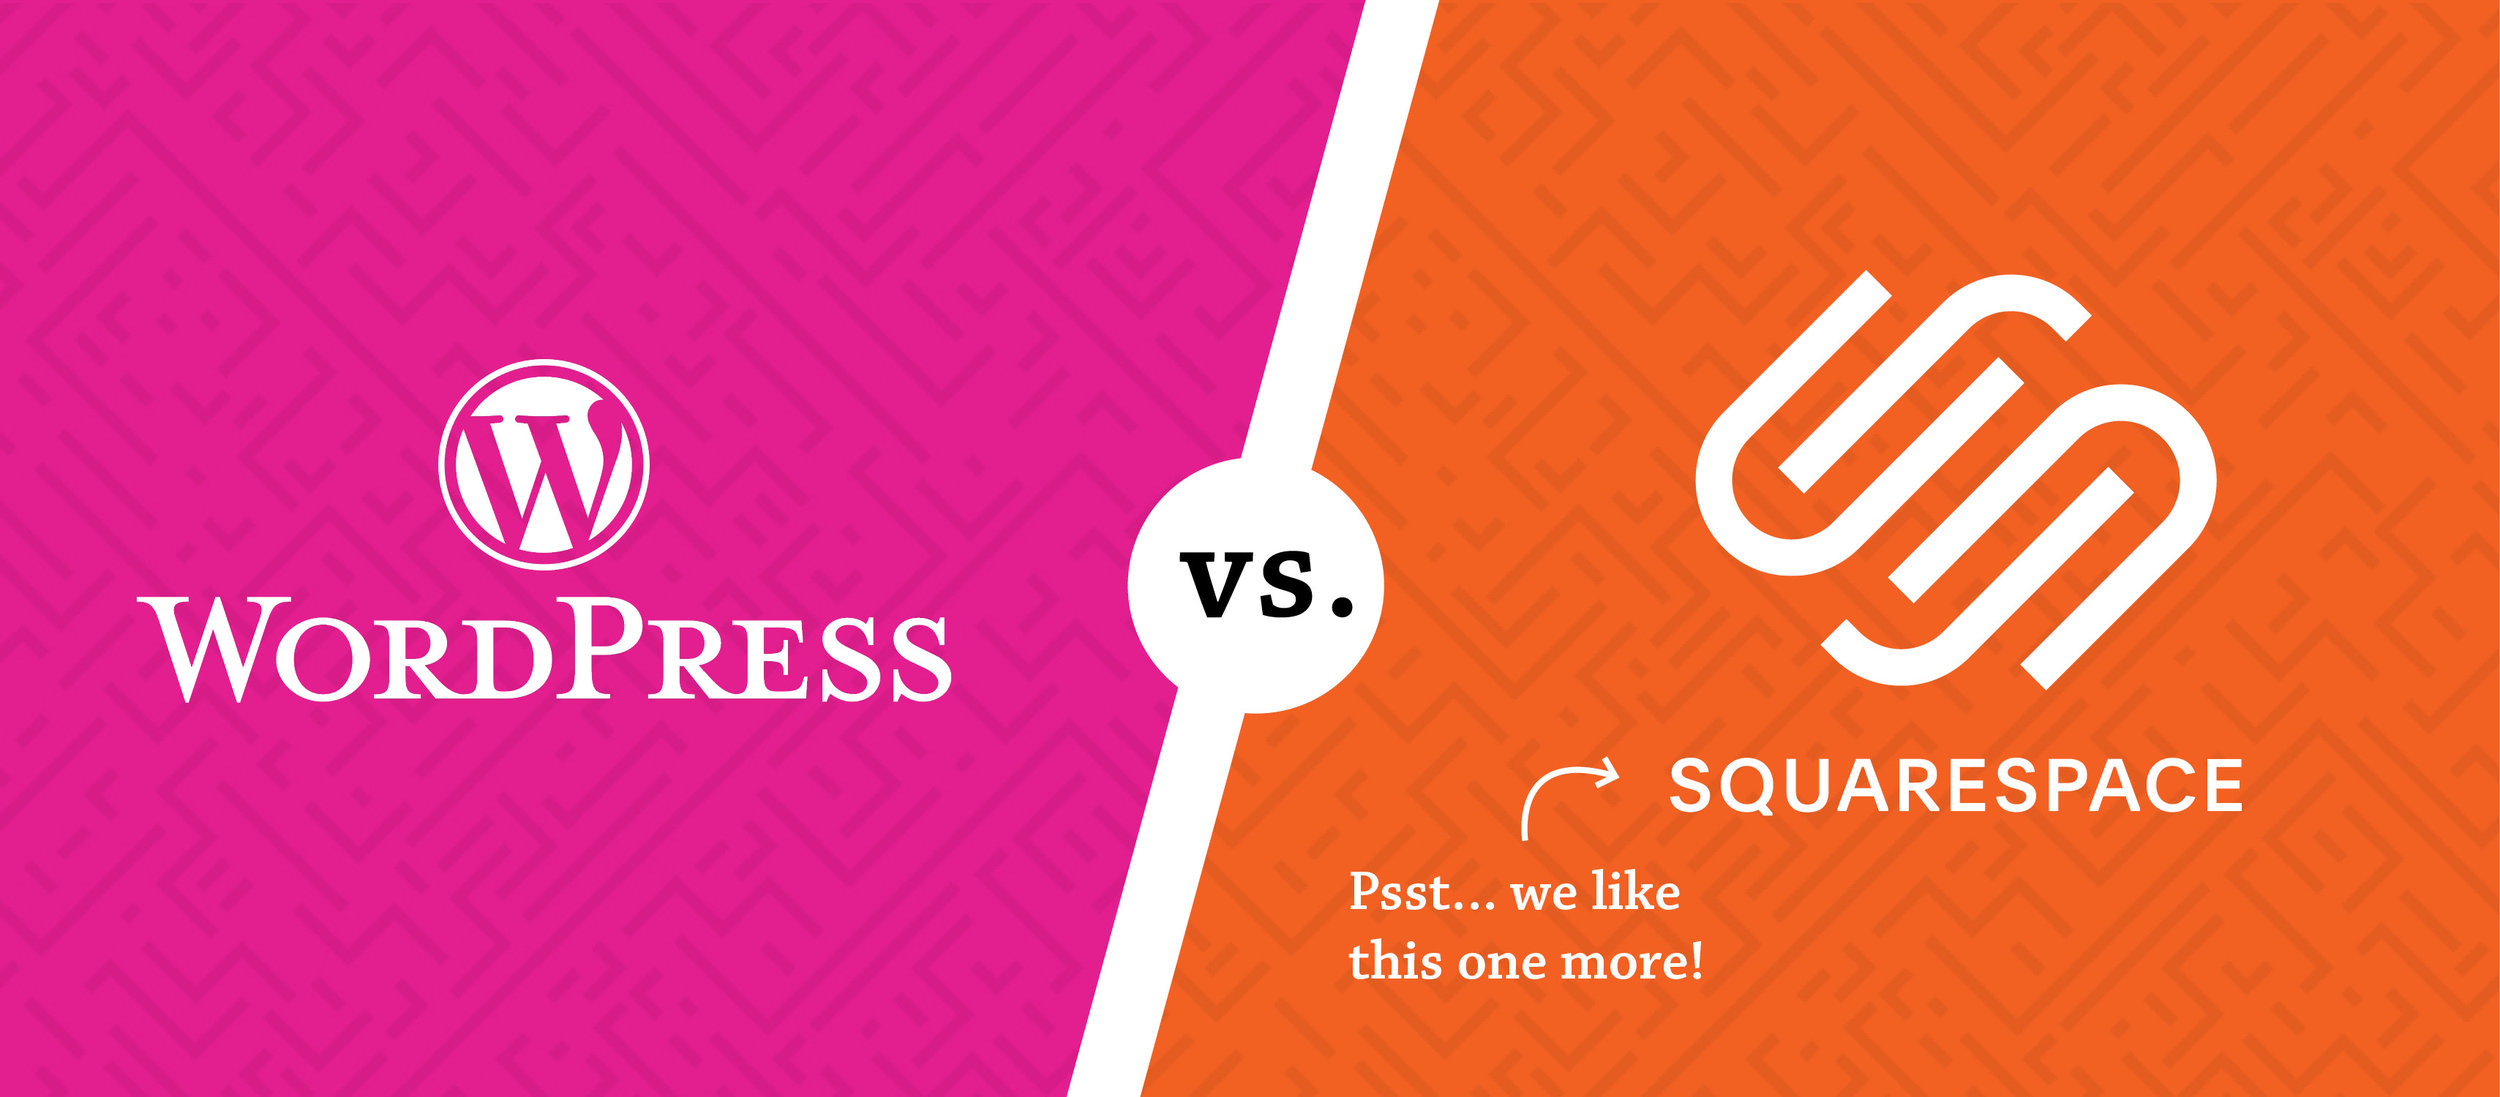 Hive Squarespace vs Wordpress Header.jpg